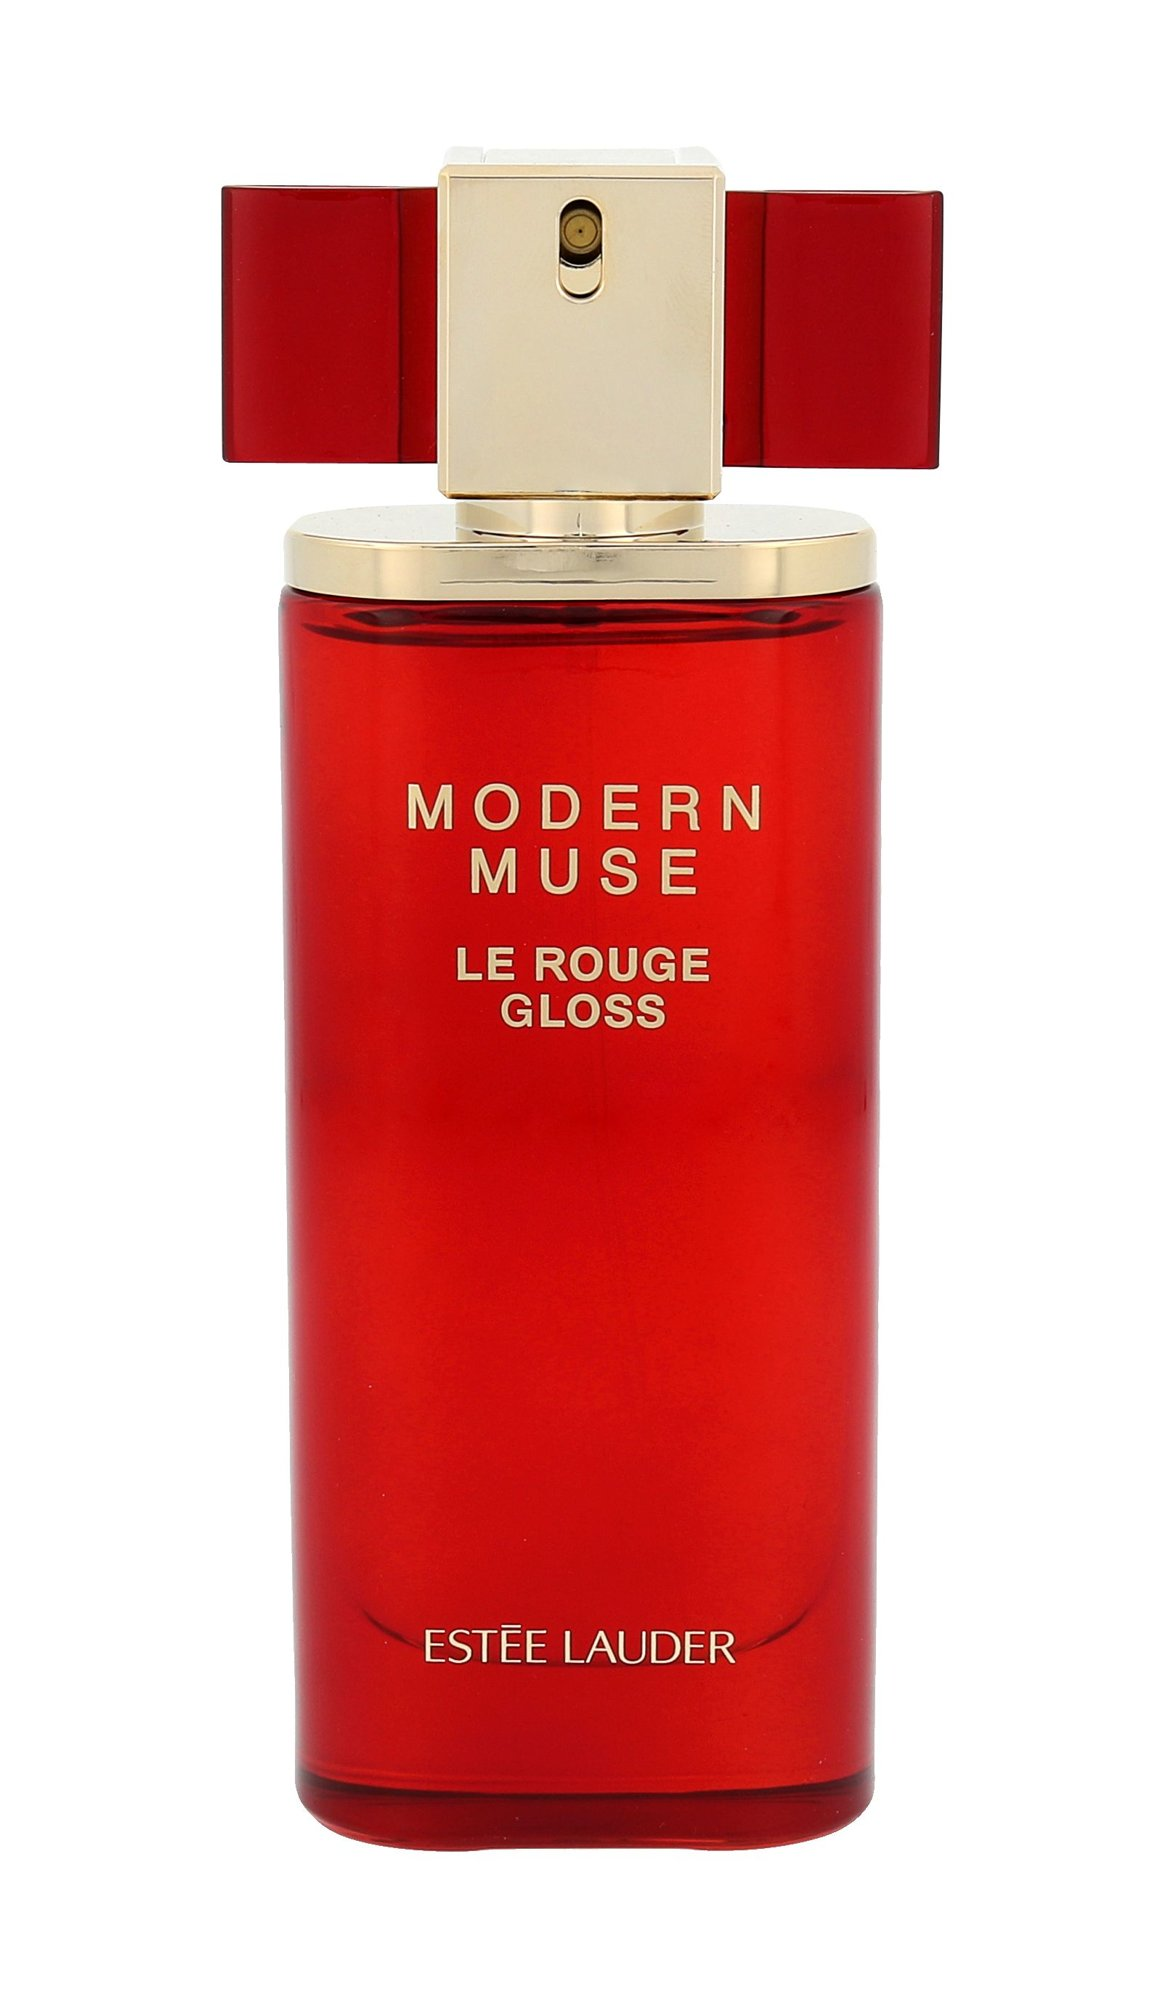 Estée Lauder Modern Muse Le Rouge Gloss EDP 50ml